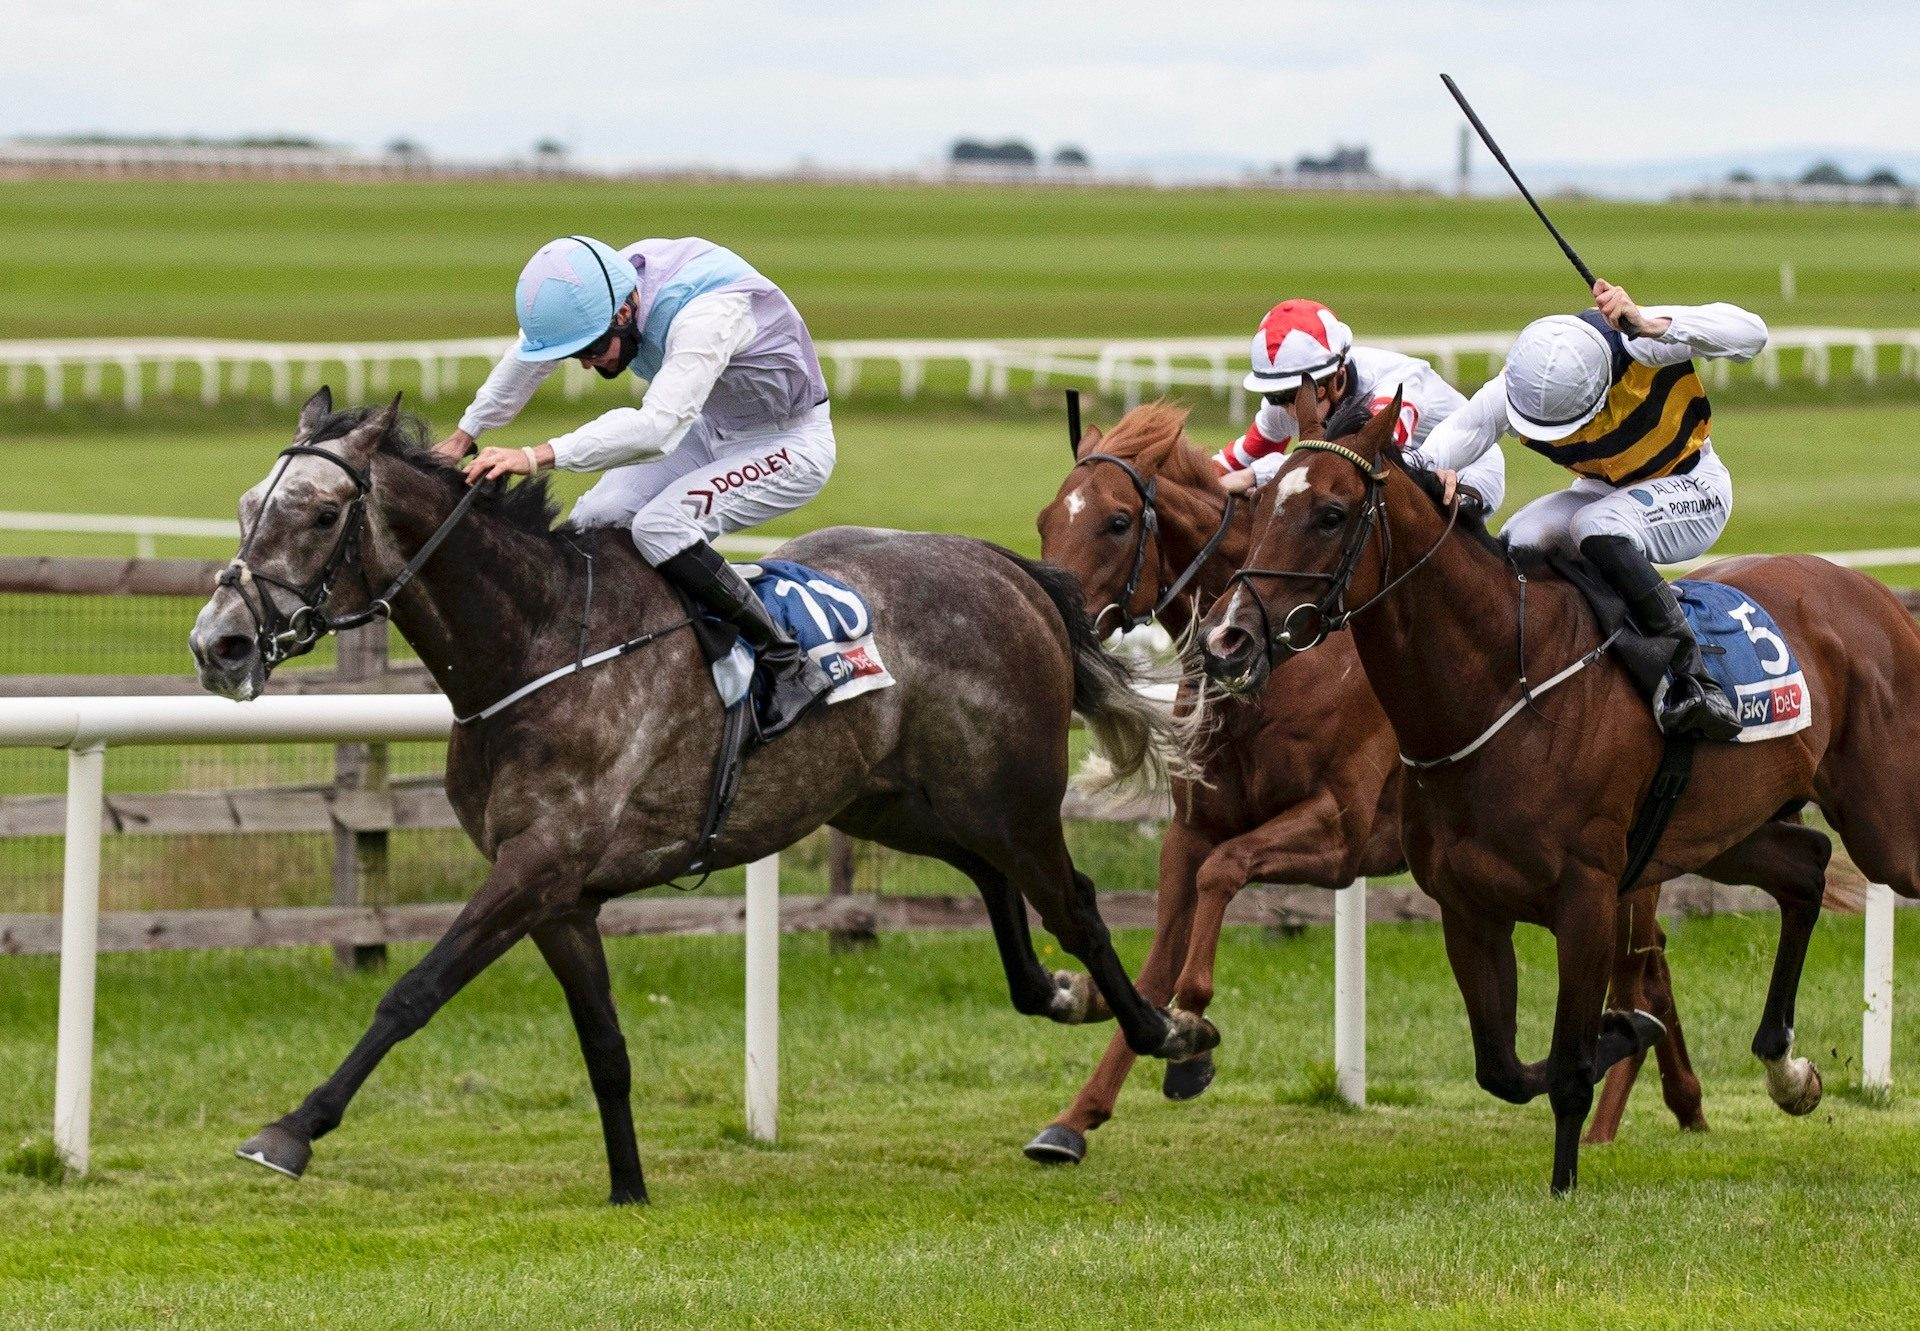 Lynwood Gold (Mastercraftsman) Wins The Ebor Trial at the Curragh